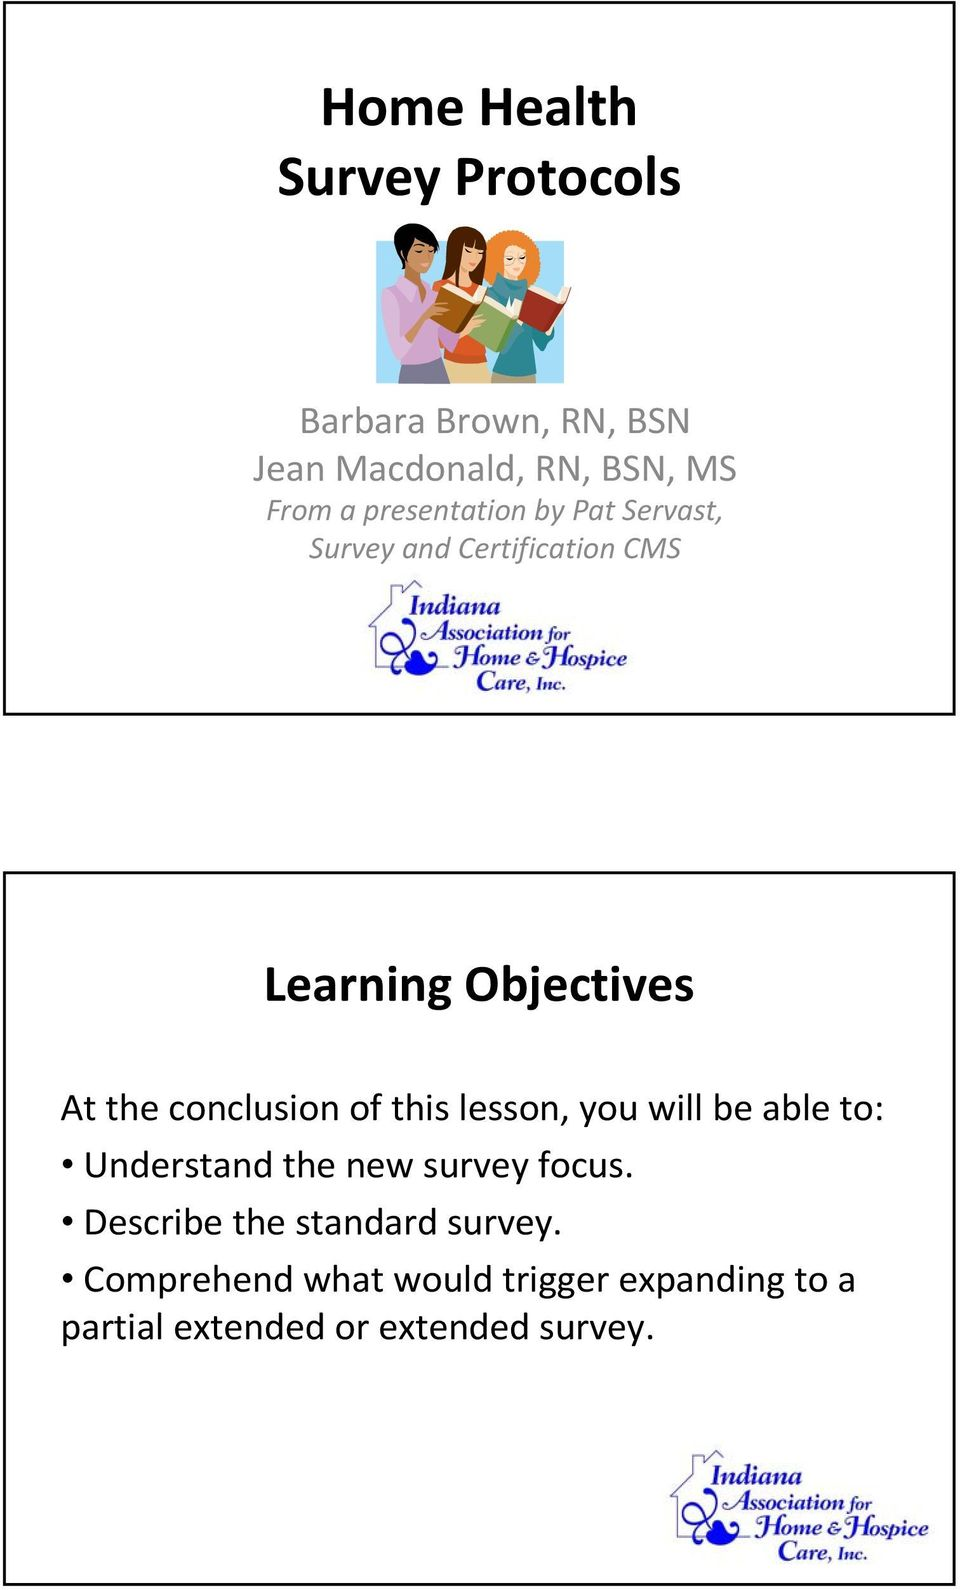 conclusion of this lesson, you will be able to: Understand the new survey focus.